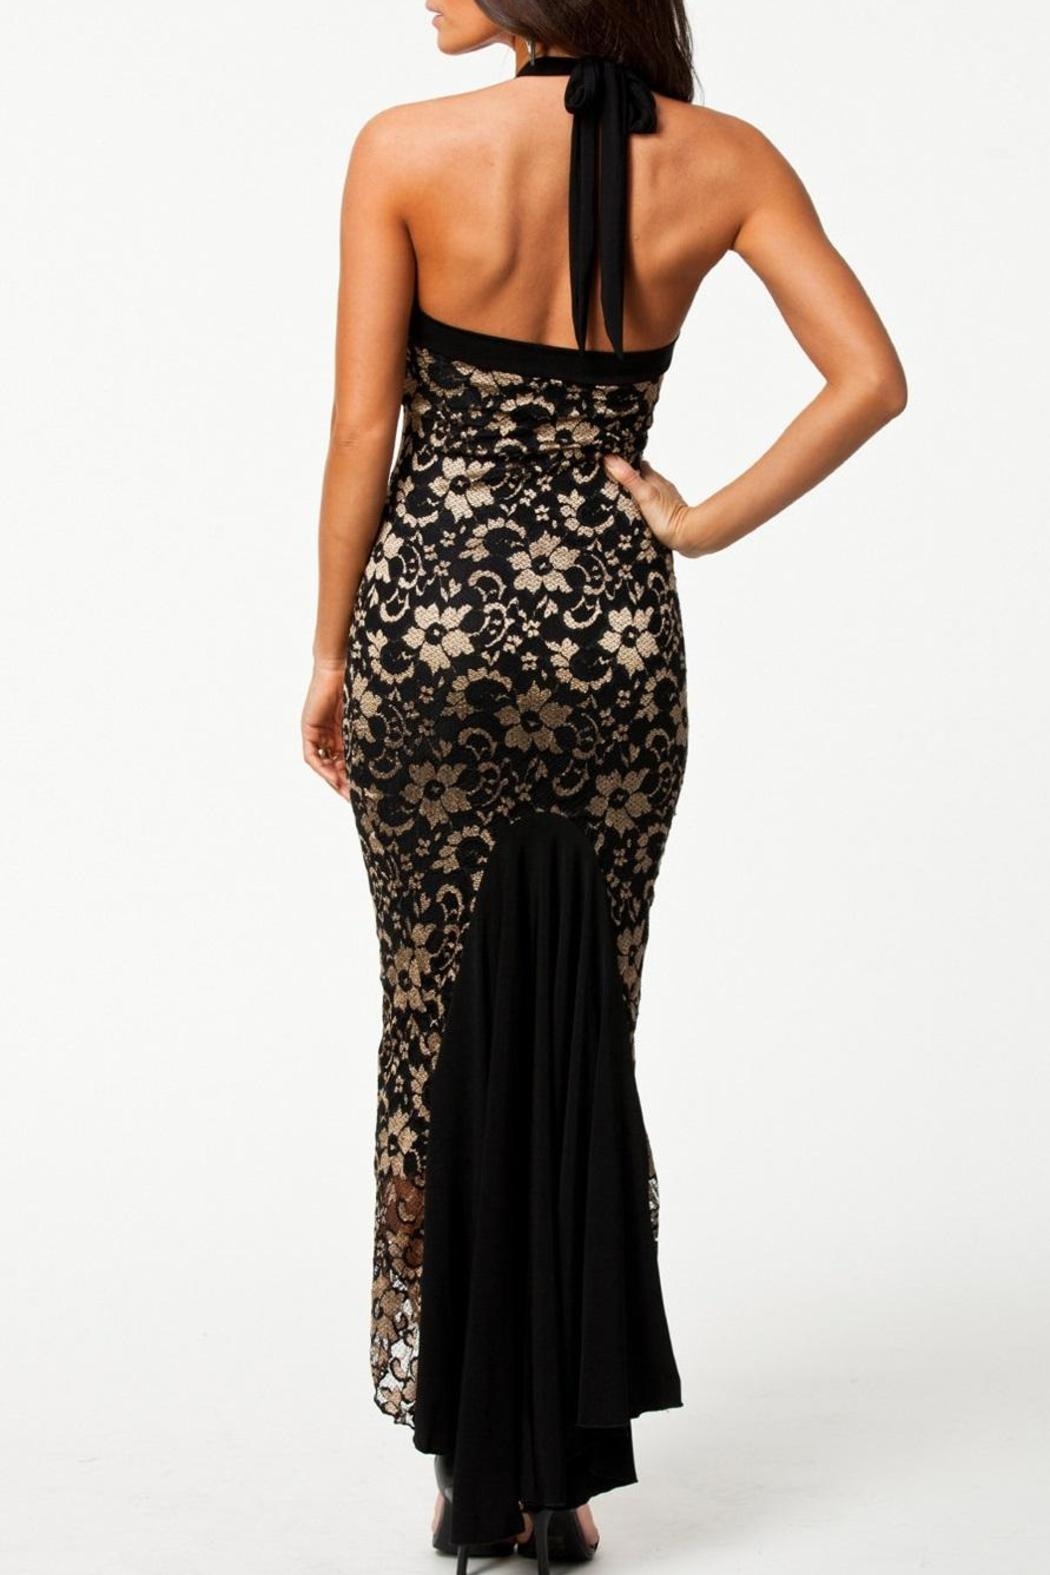 Adore Clothes & More Lace Long Dress - Back Cropped Image